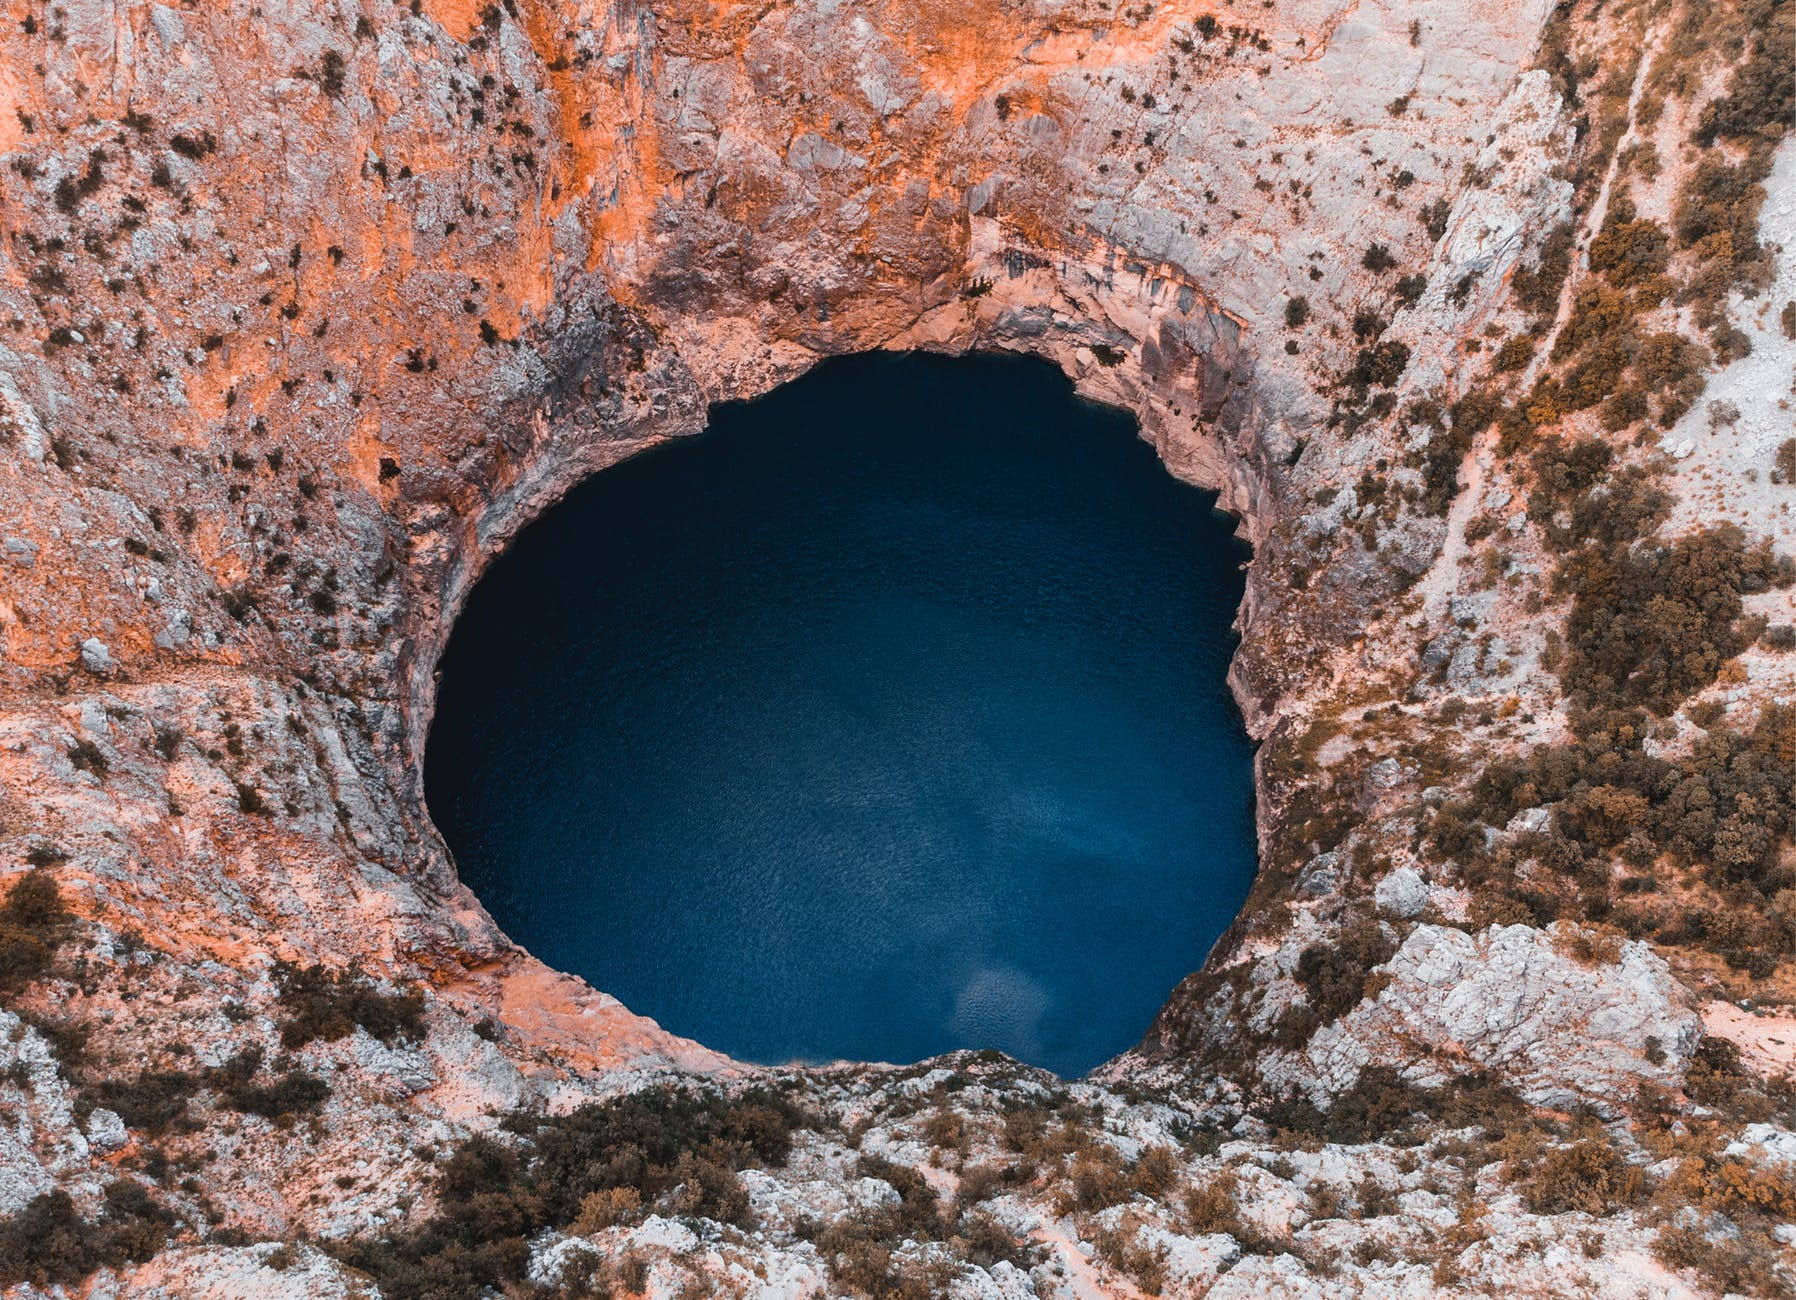 close up photography of hole and body of water